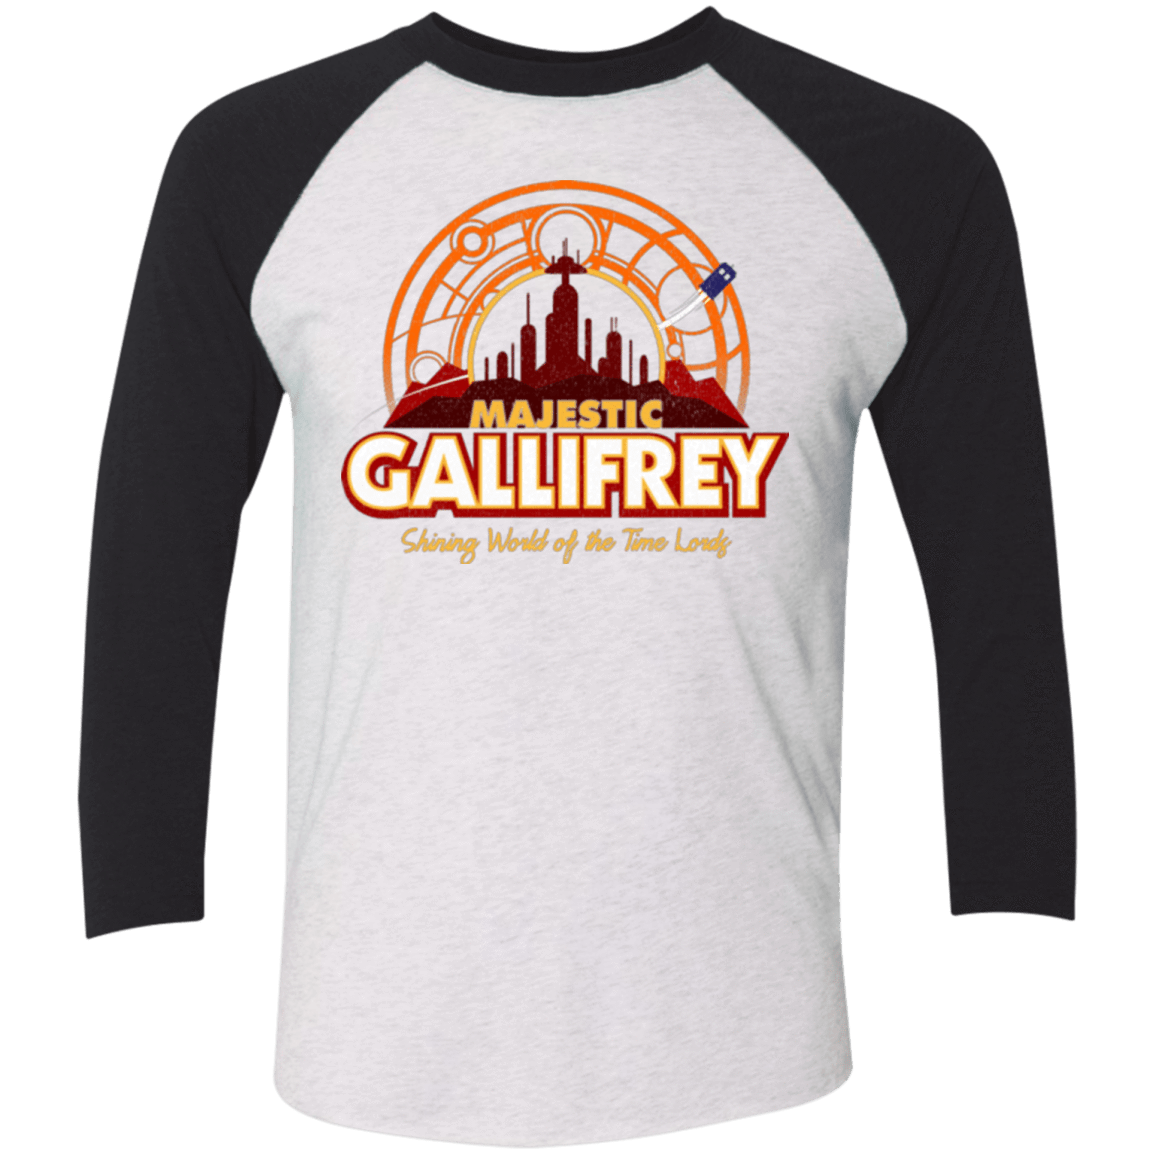 T-Shirts Heather White/Vintage Black / X-Small Majestic Gallifrey Triblend 3/4 Sleeve